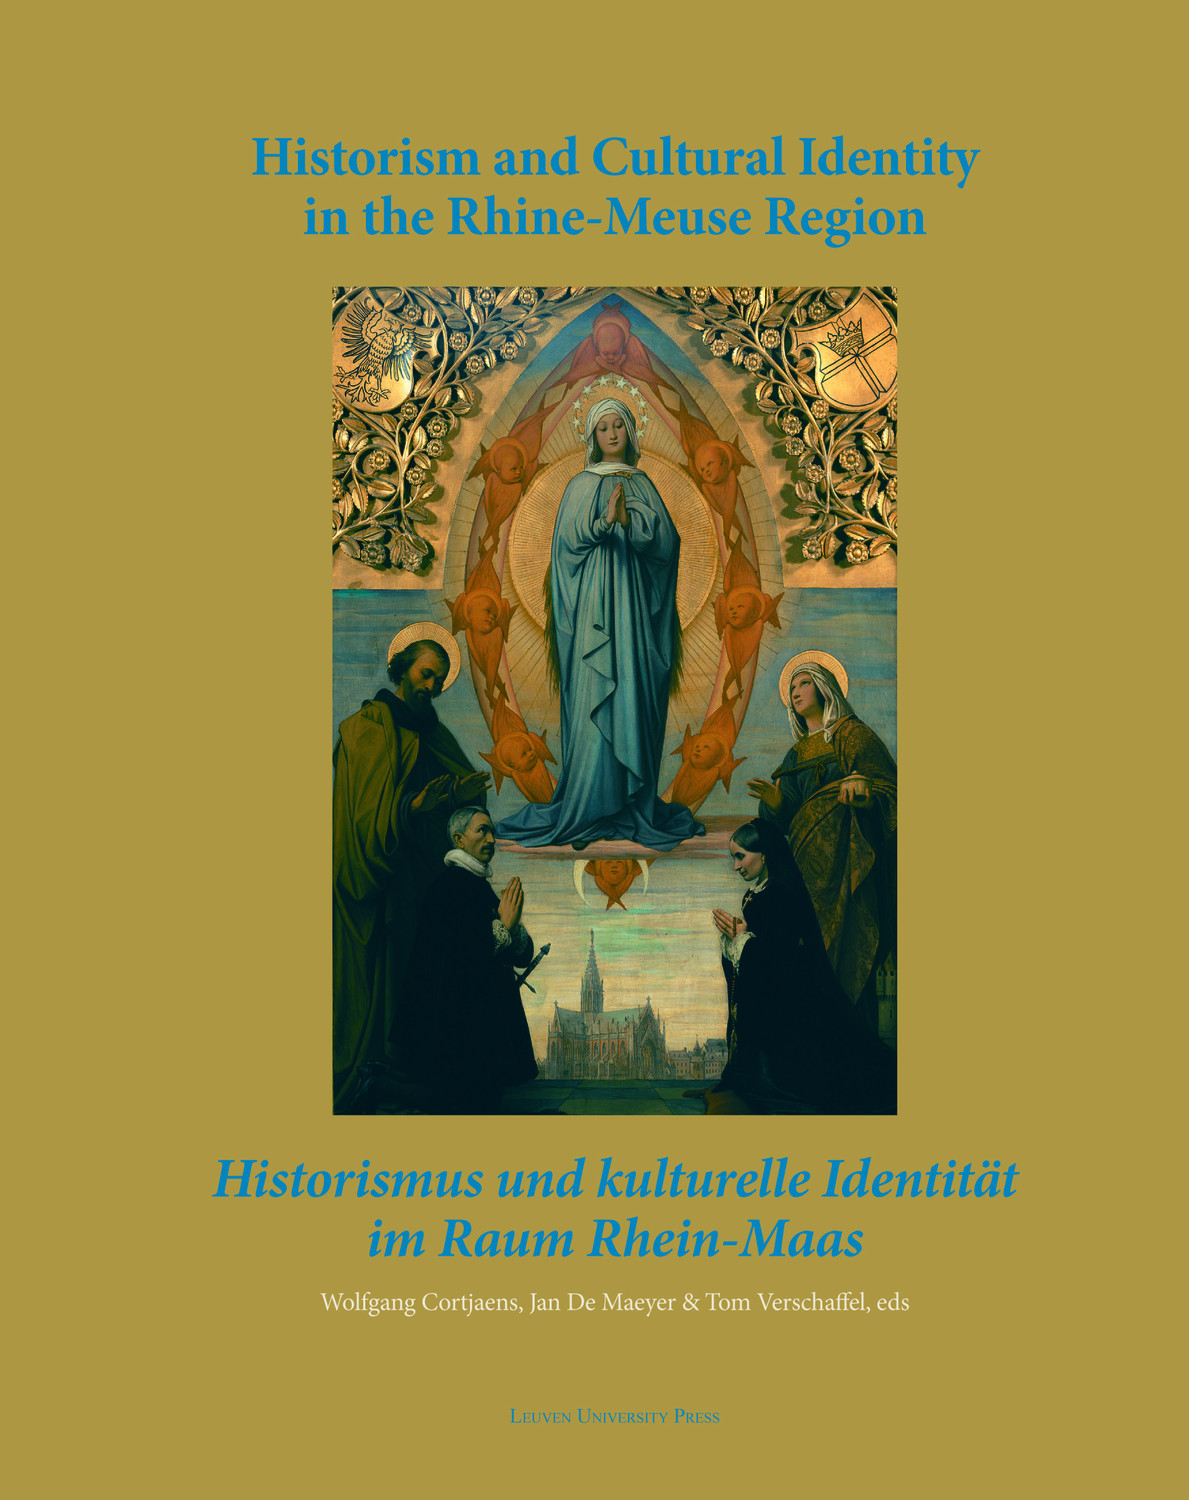 Historism and Cultural Identity in the Rhine-Meuse Region